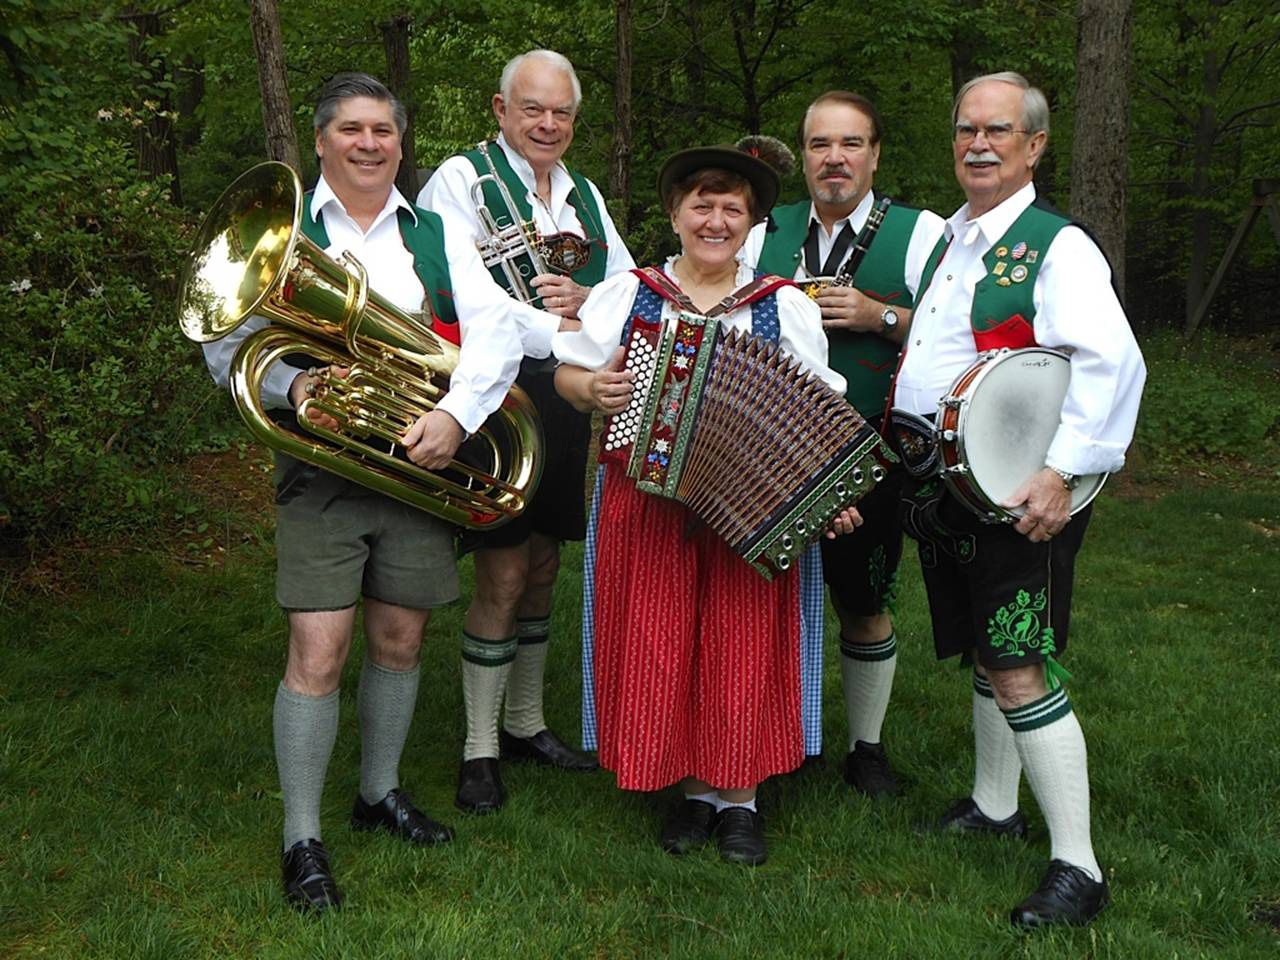 Learn More About German Folk Music You Should Know